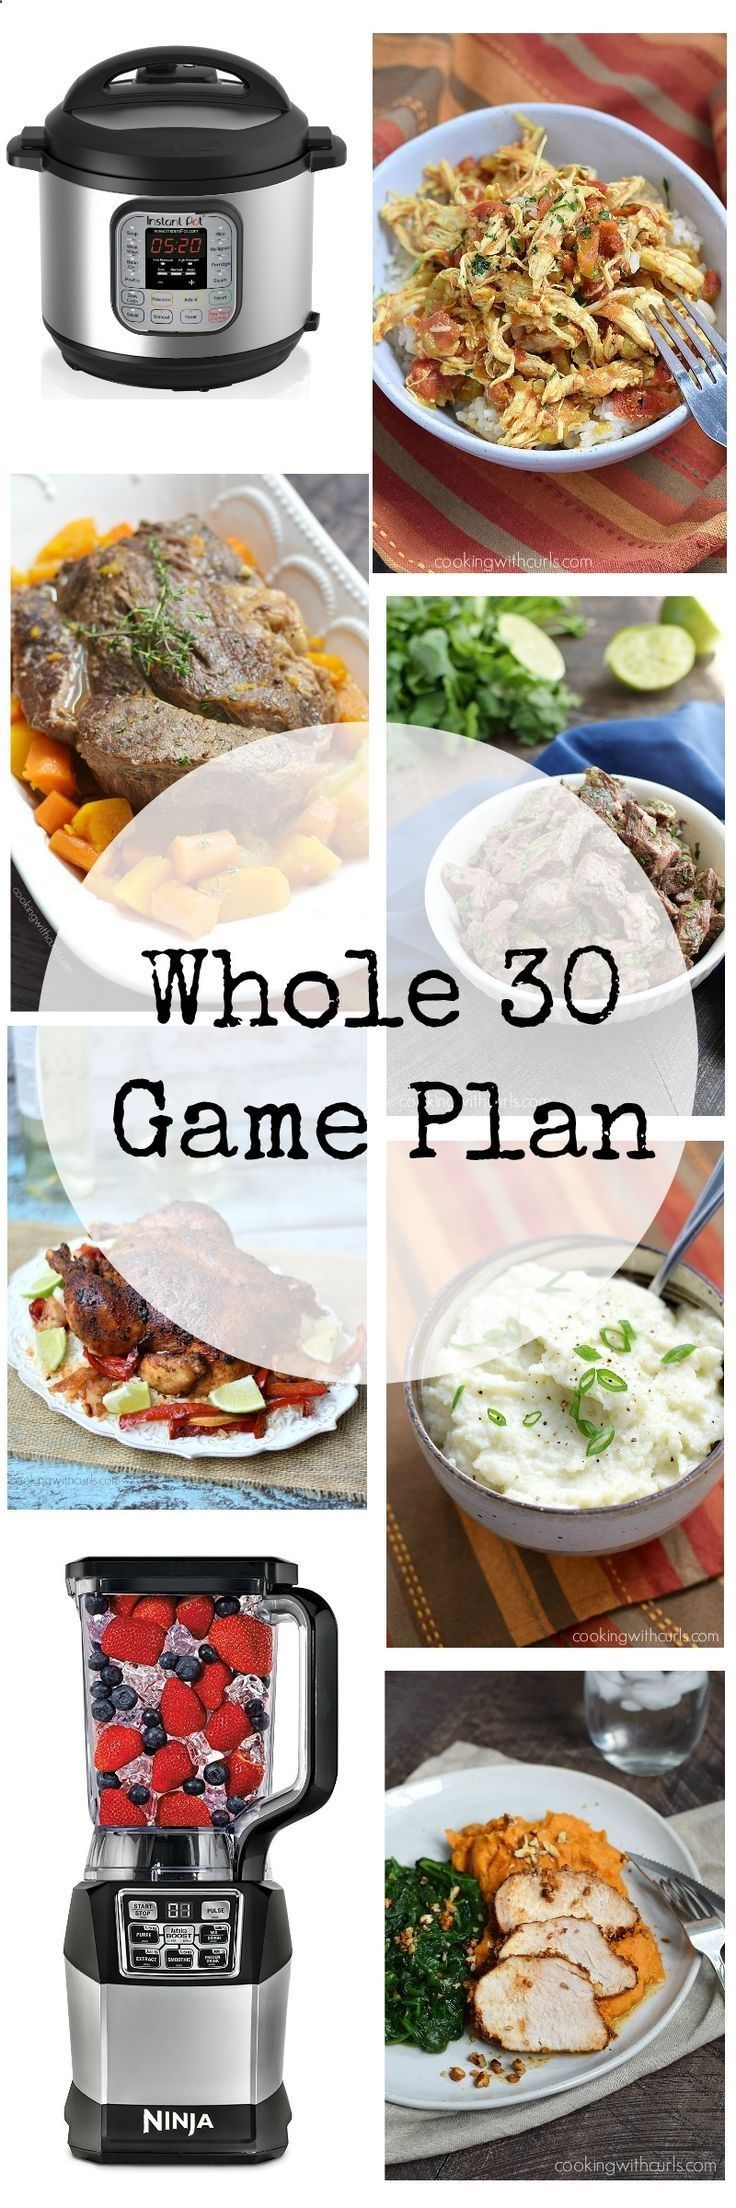 I am starting the New Year with a new outlook and a Whole 30 Game Plan to get my life and health back on track | cookingwithcurls.com (Paleo For Beginners Track)